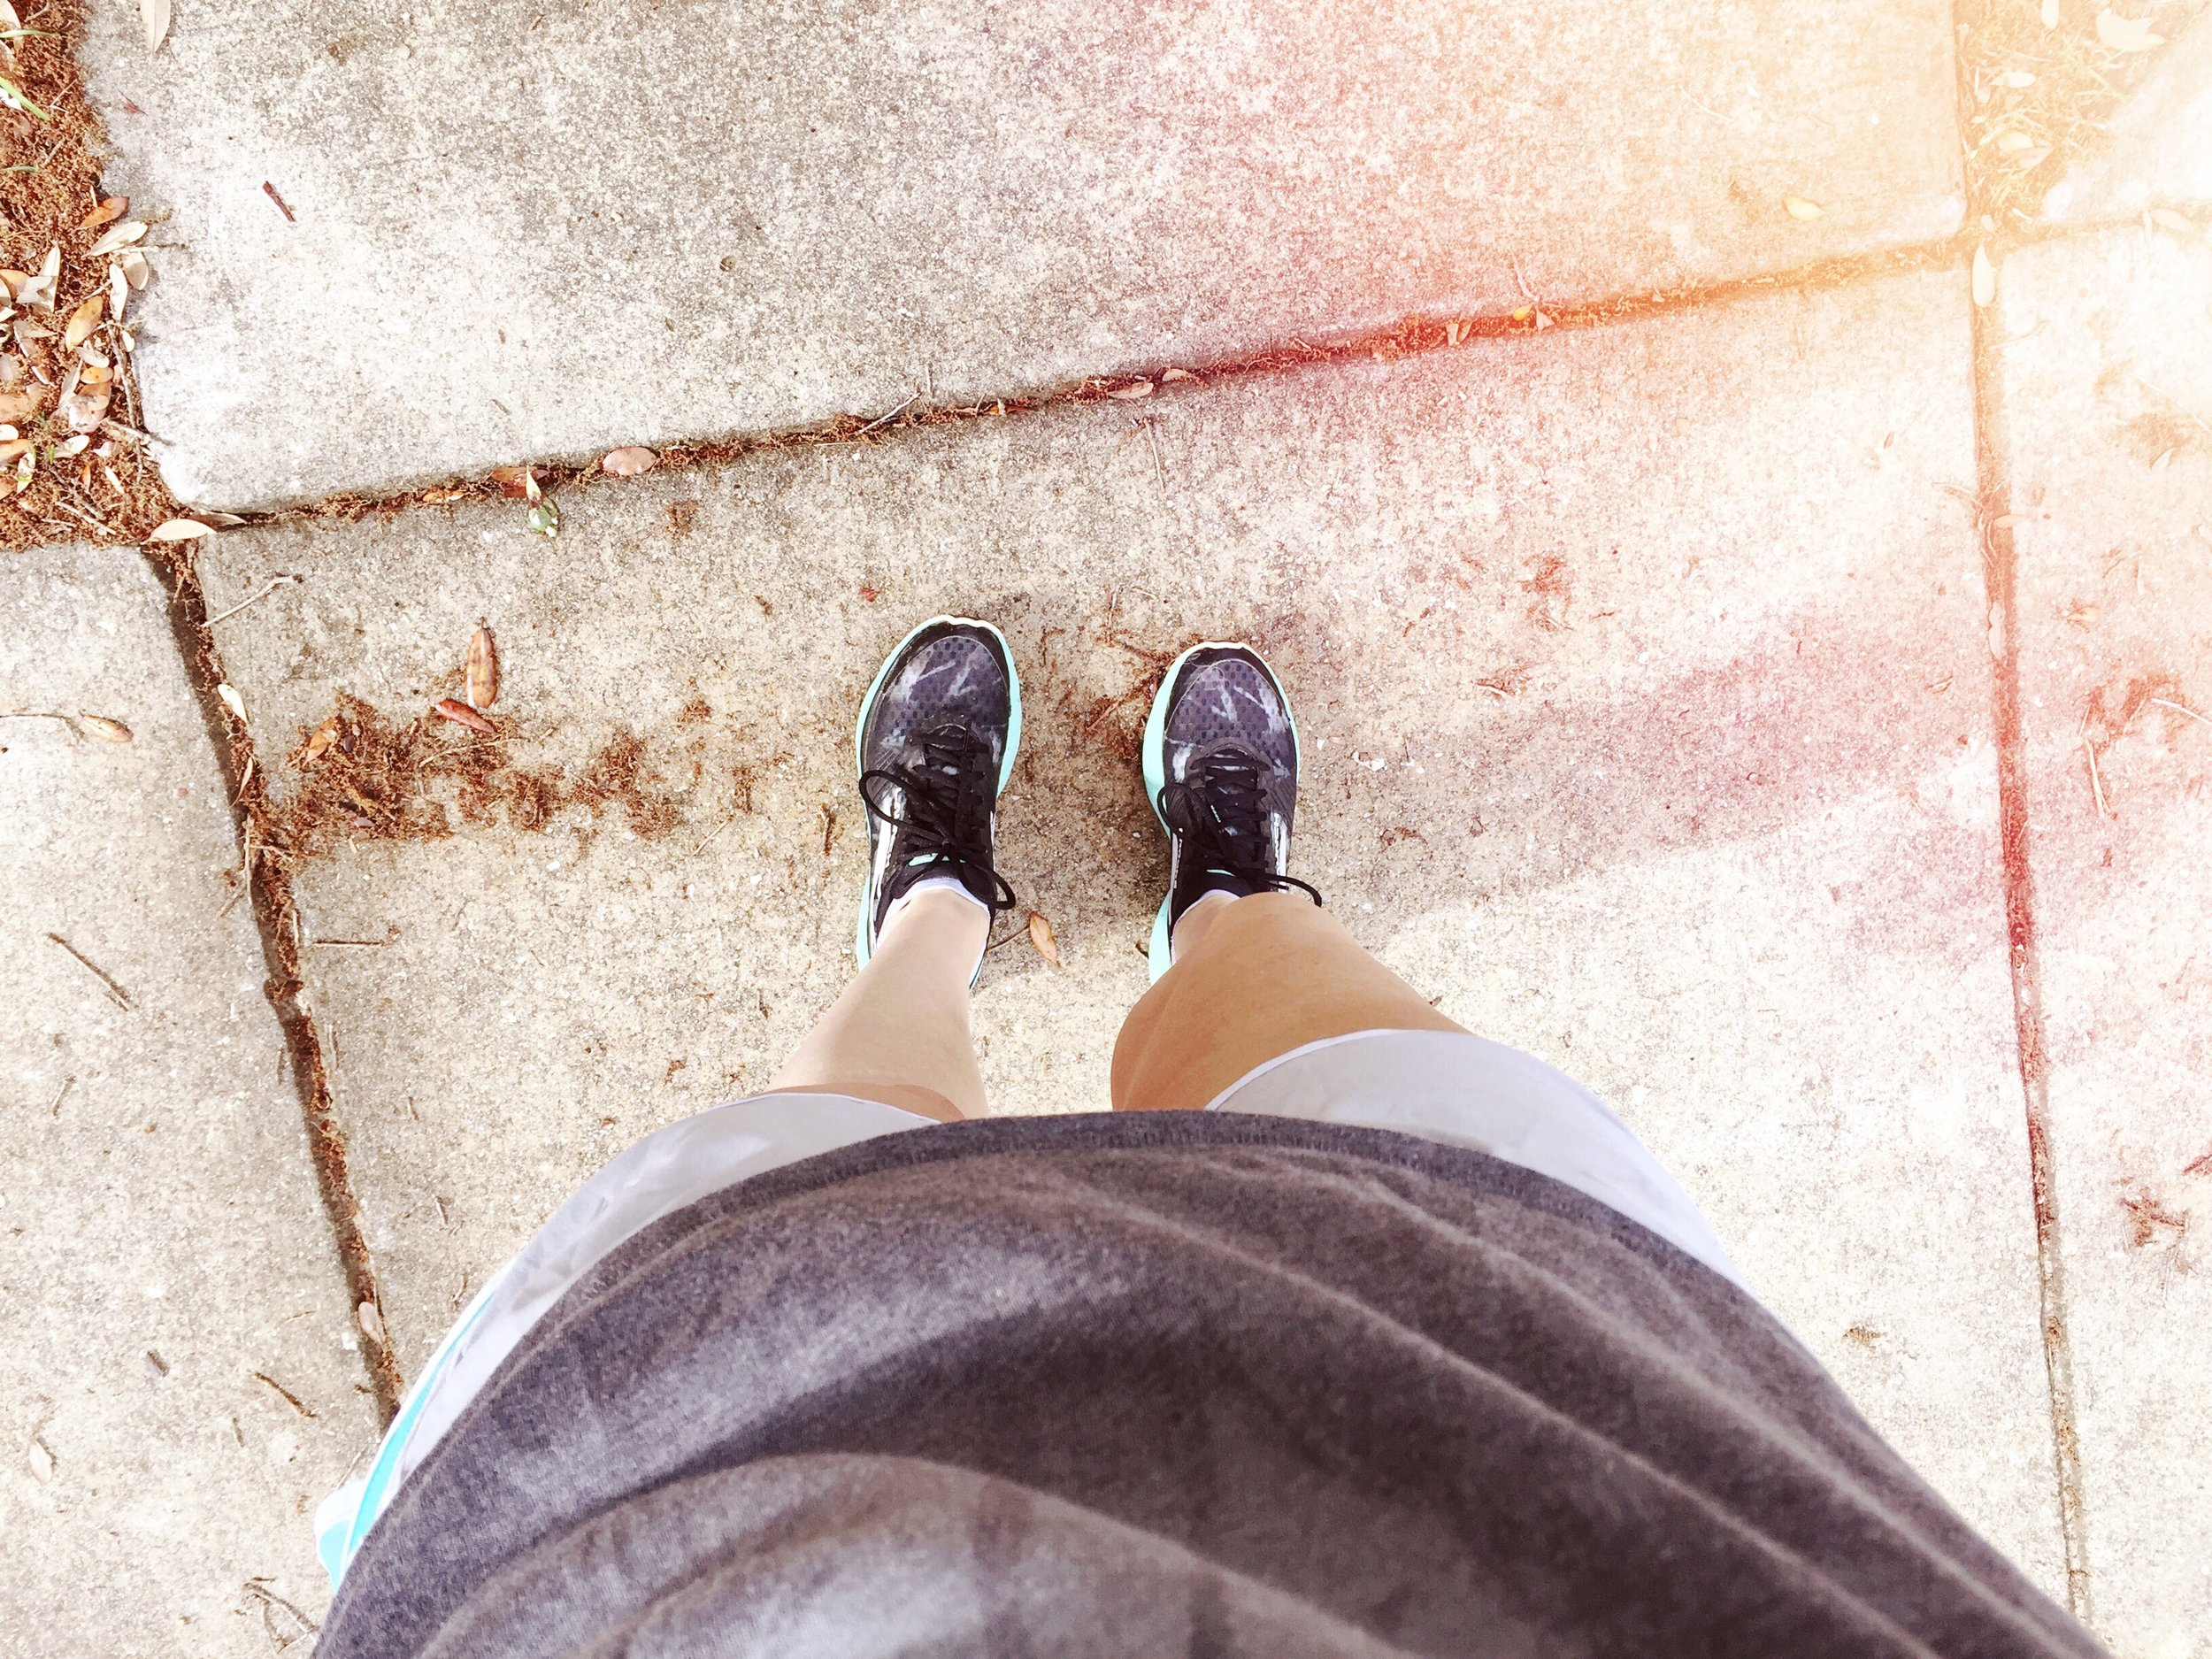 Running feels a whole lot better without the extra bloat